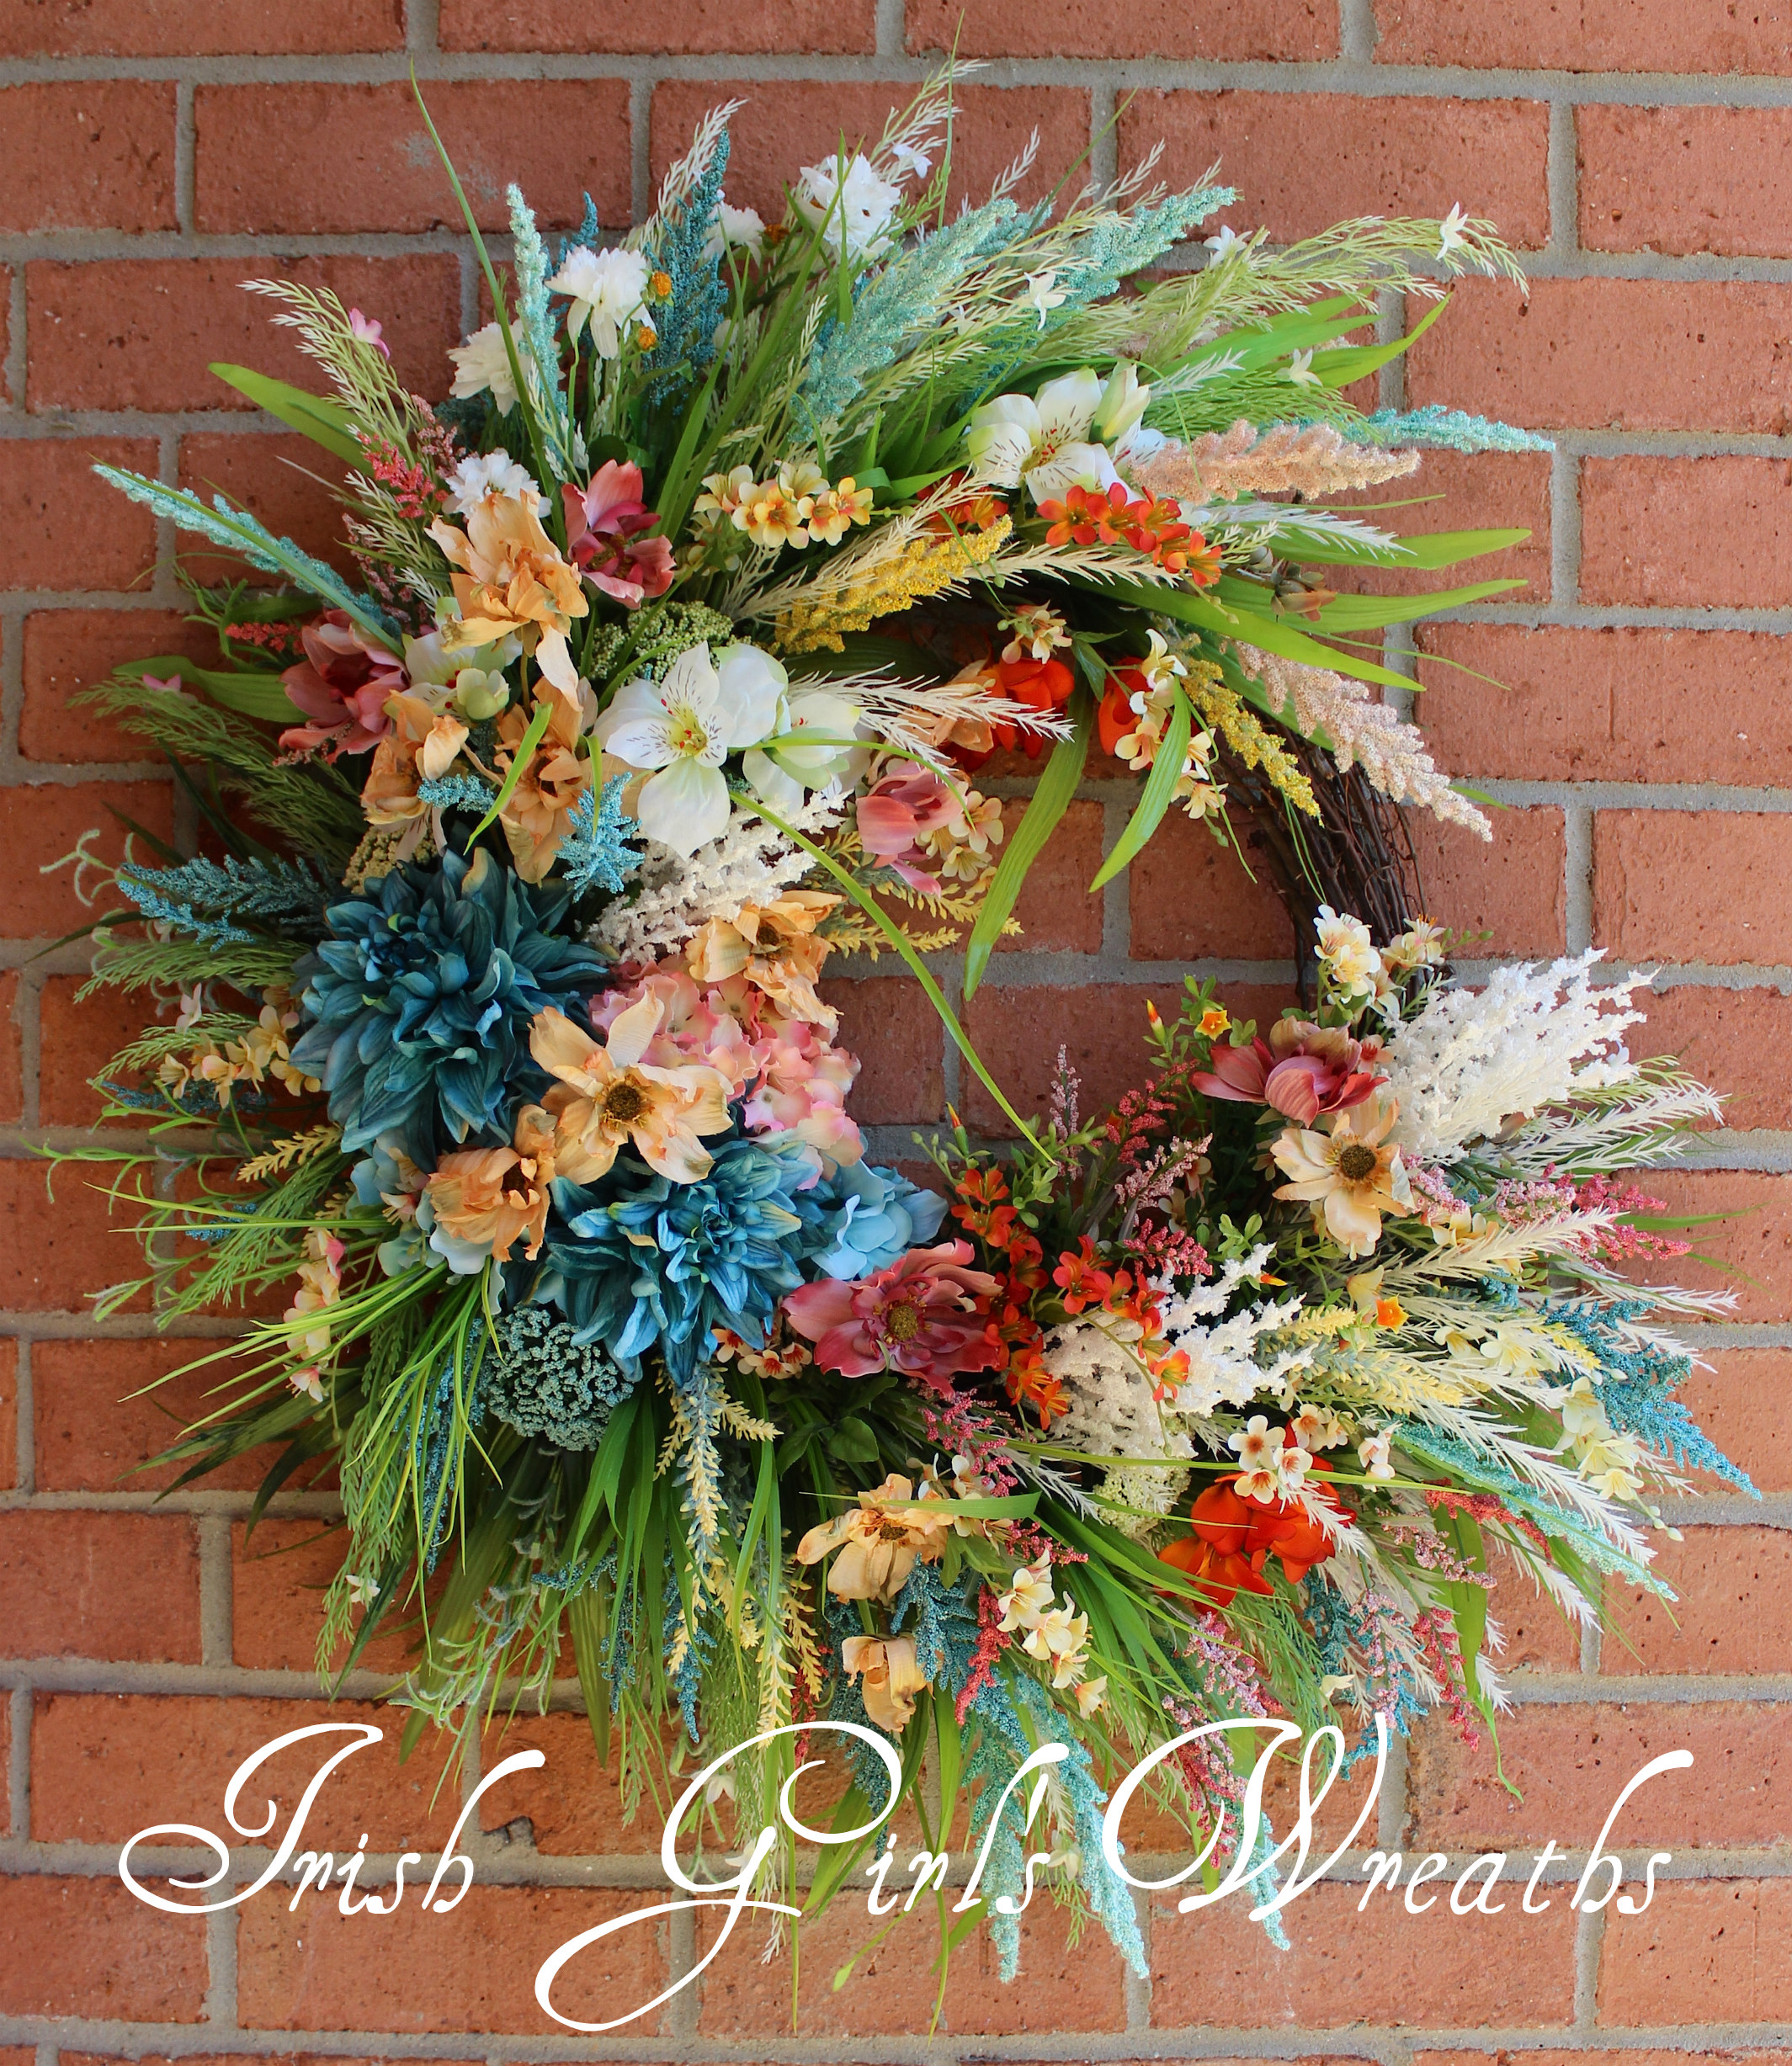 Deluxe Extra Large Turquoise Coastal Wreath, Beach Sunrise Wreath, Summer Wreath, Peach teal yellow rose